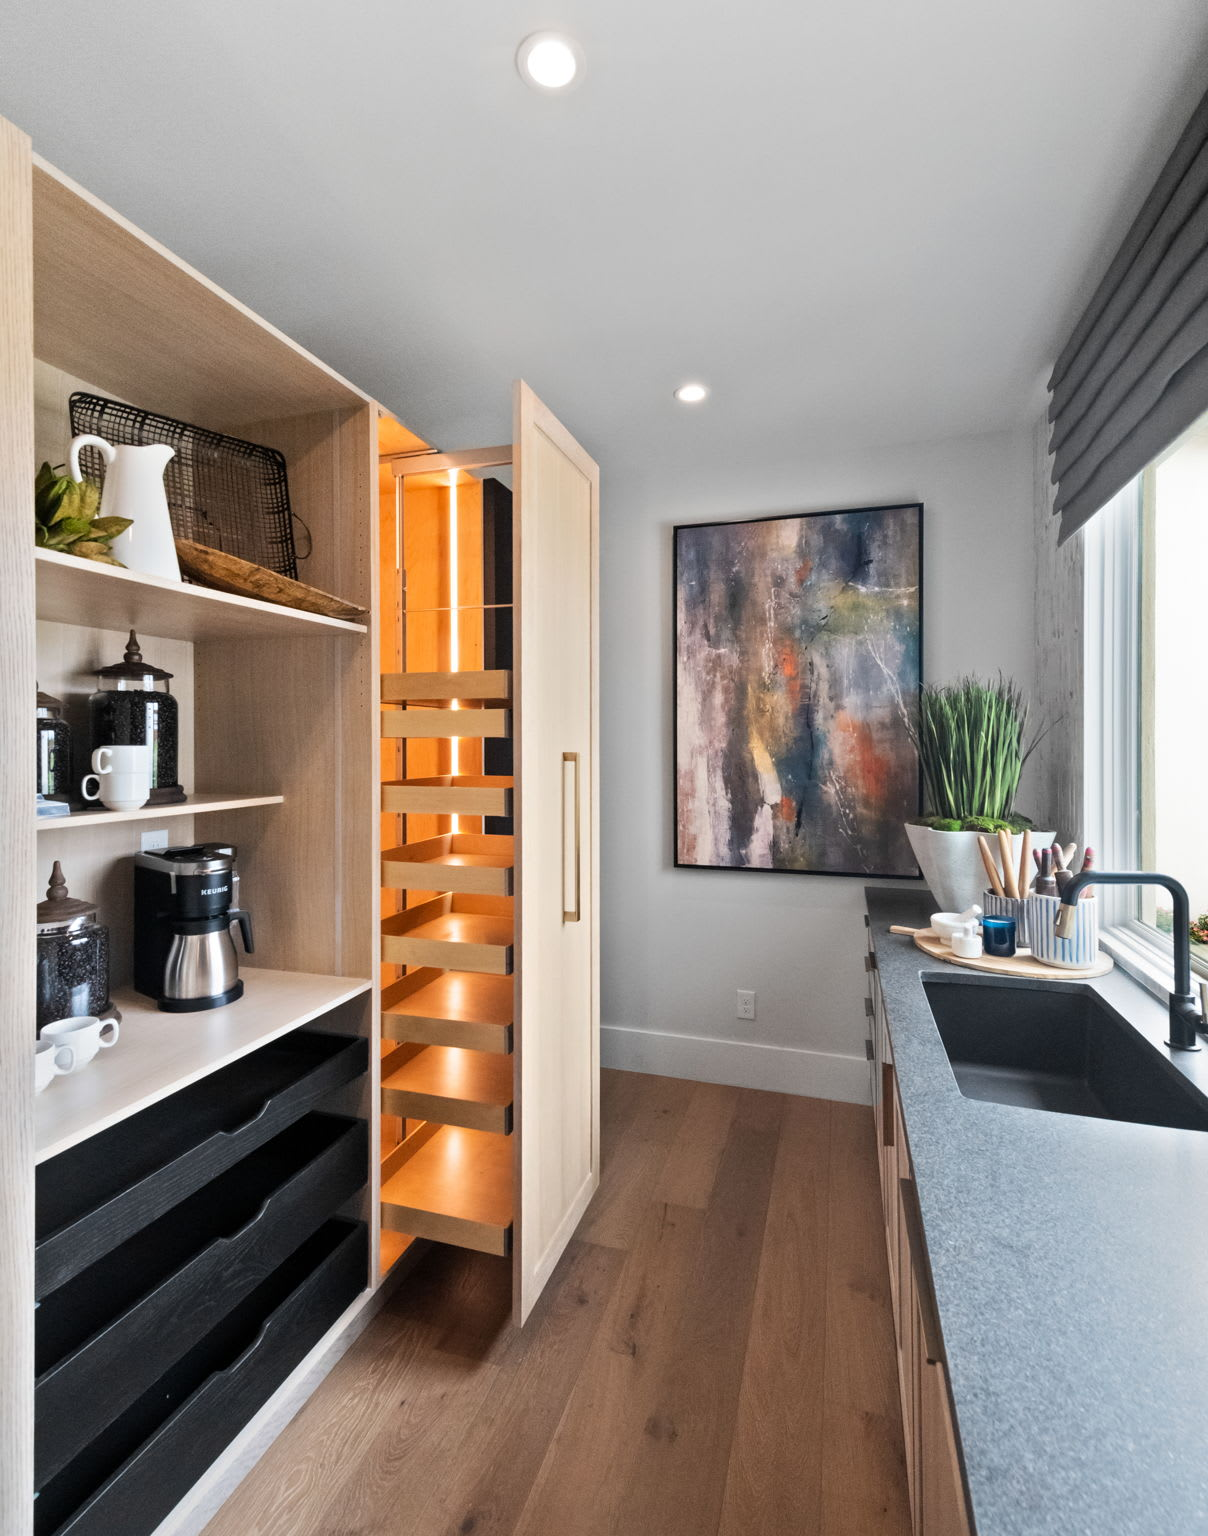 2020 Street of Dreams Home photo